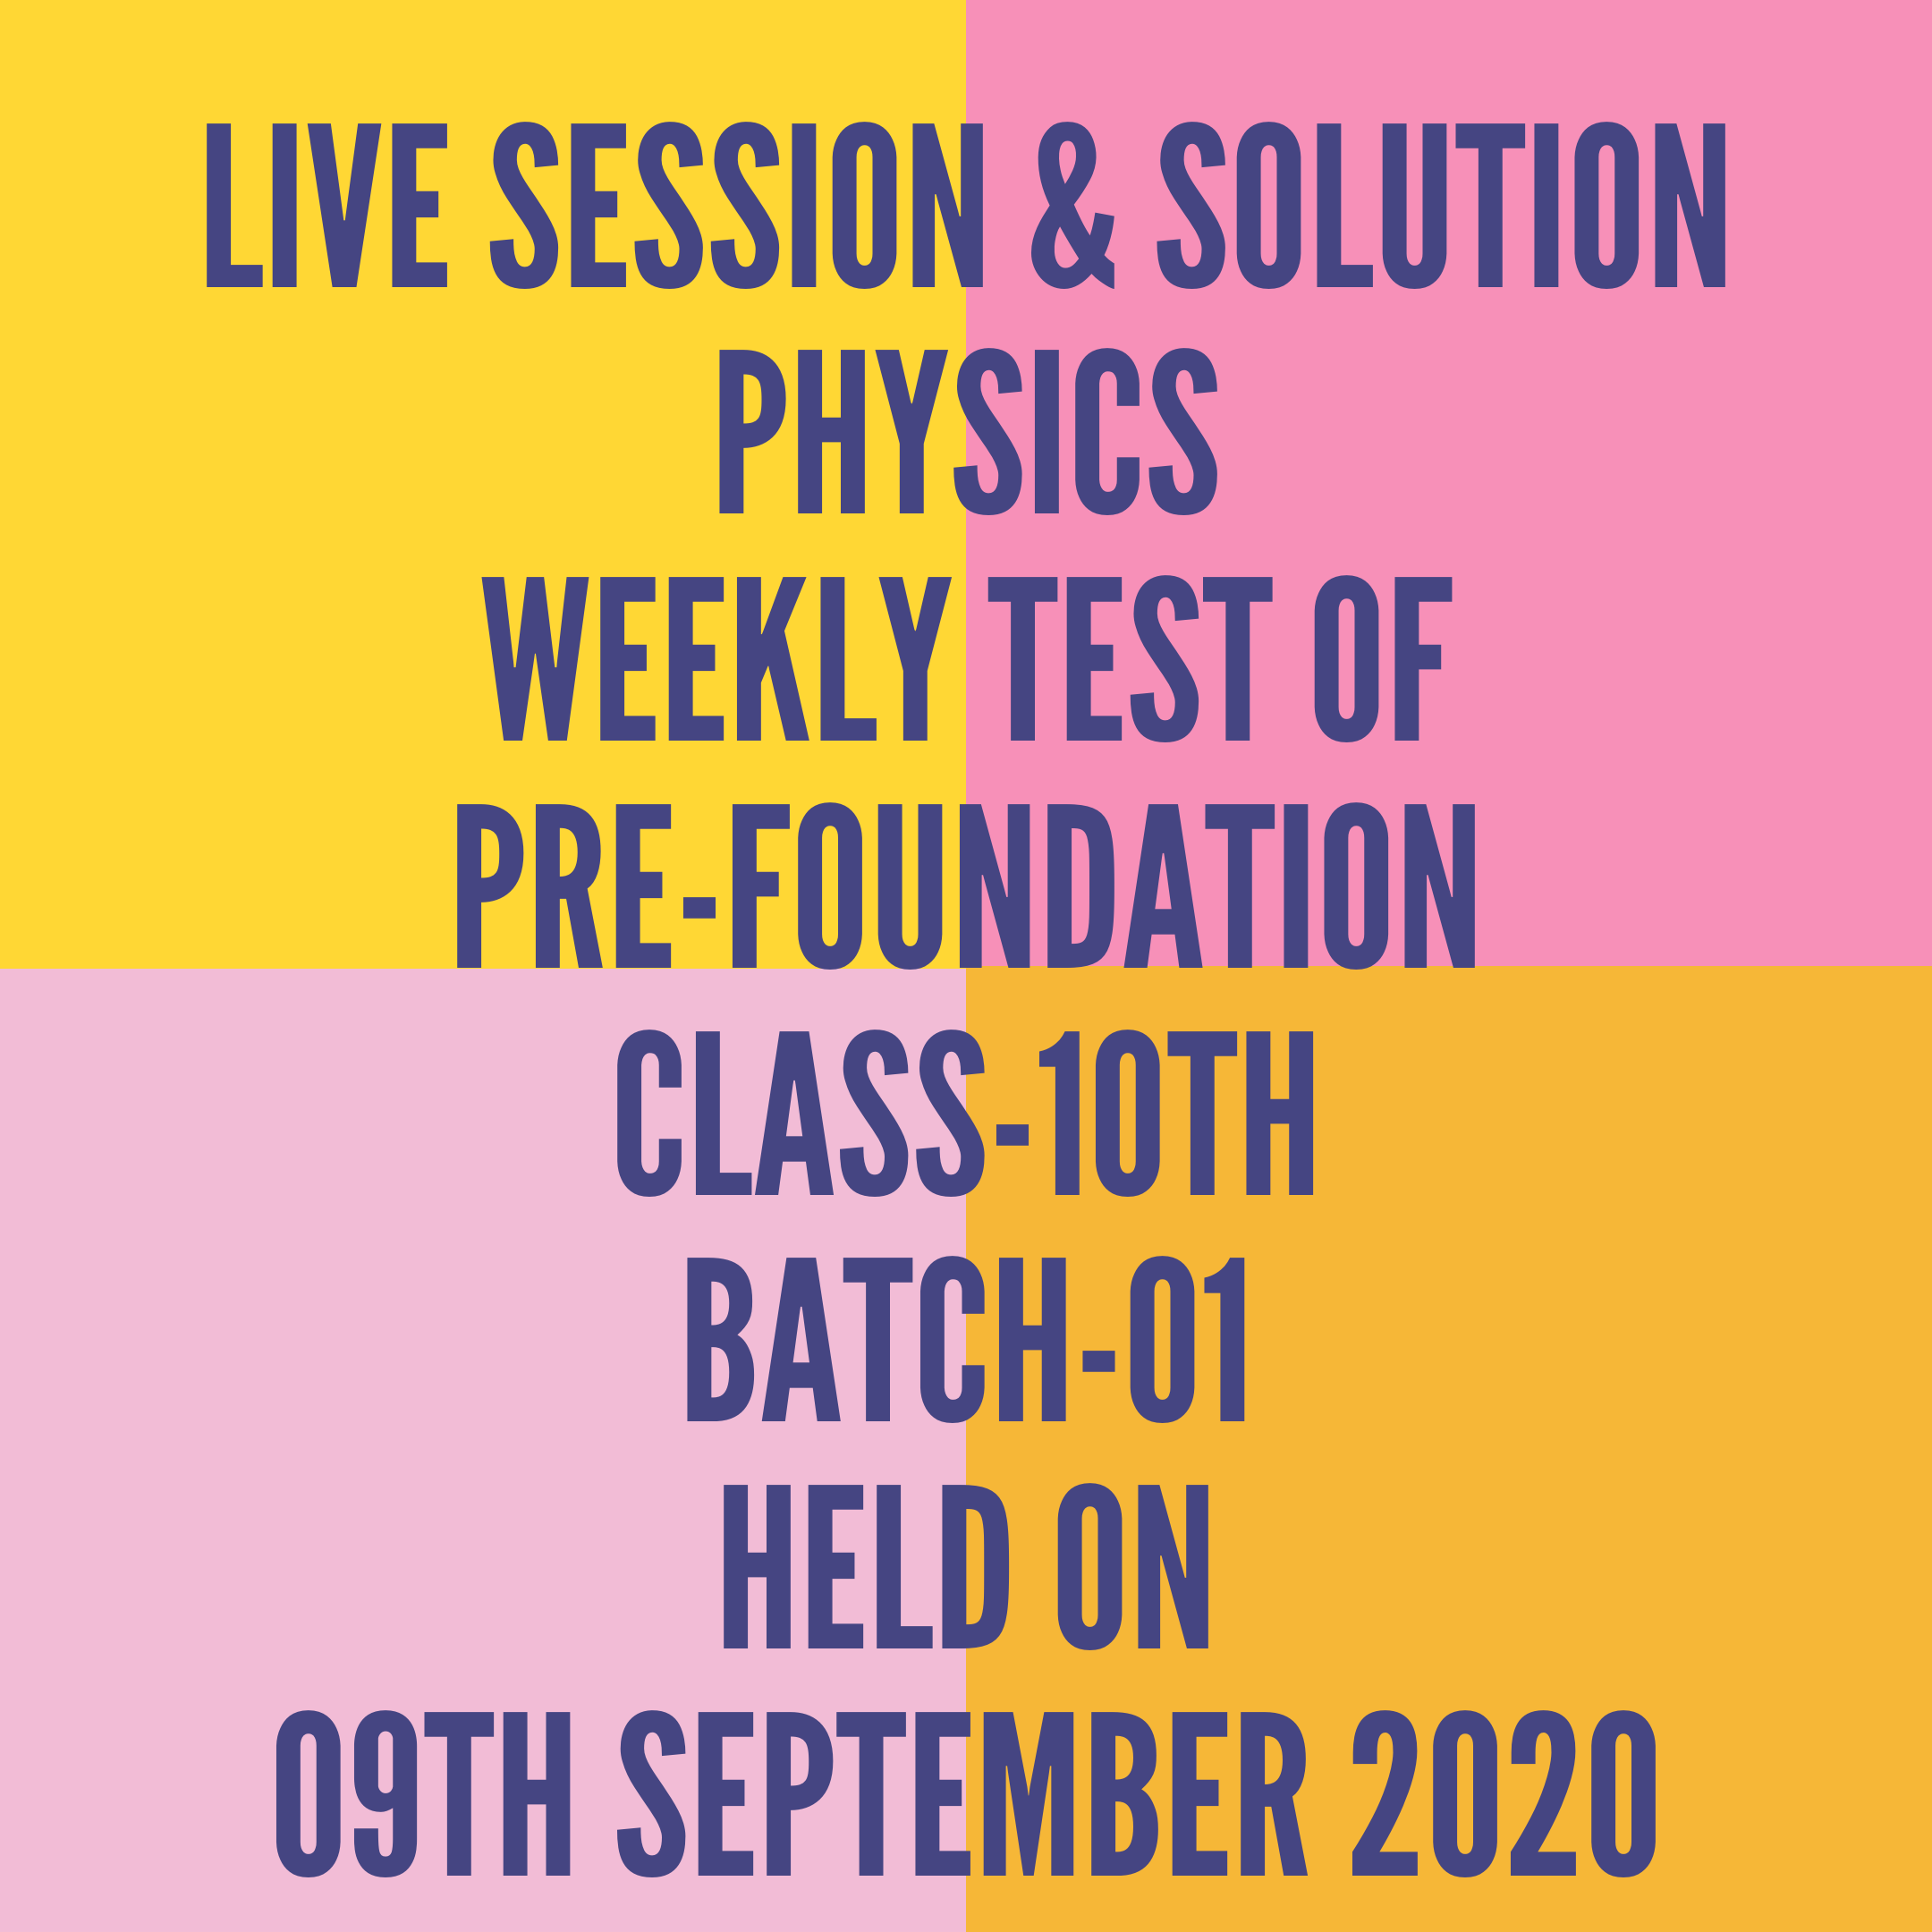 LIVE SESSION & SOLUTION PHYSICS WEEKLY TEST OF PRE-FOUNDATION CLASS-10TH BATCH-01  HELD ON 09TH SEPTEMBER 2020